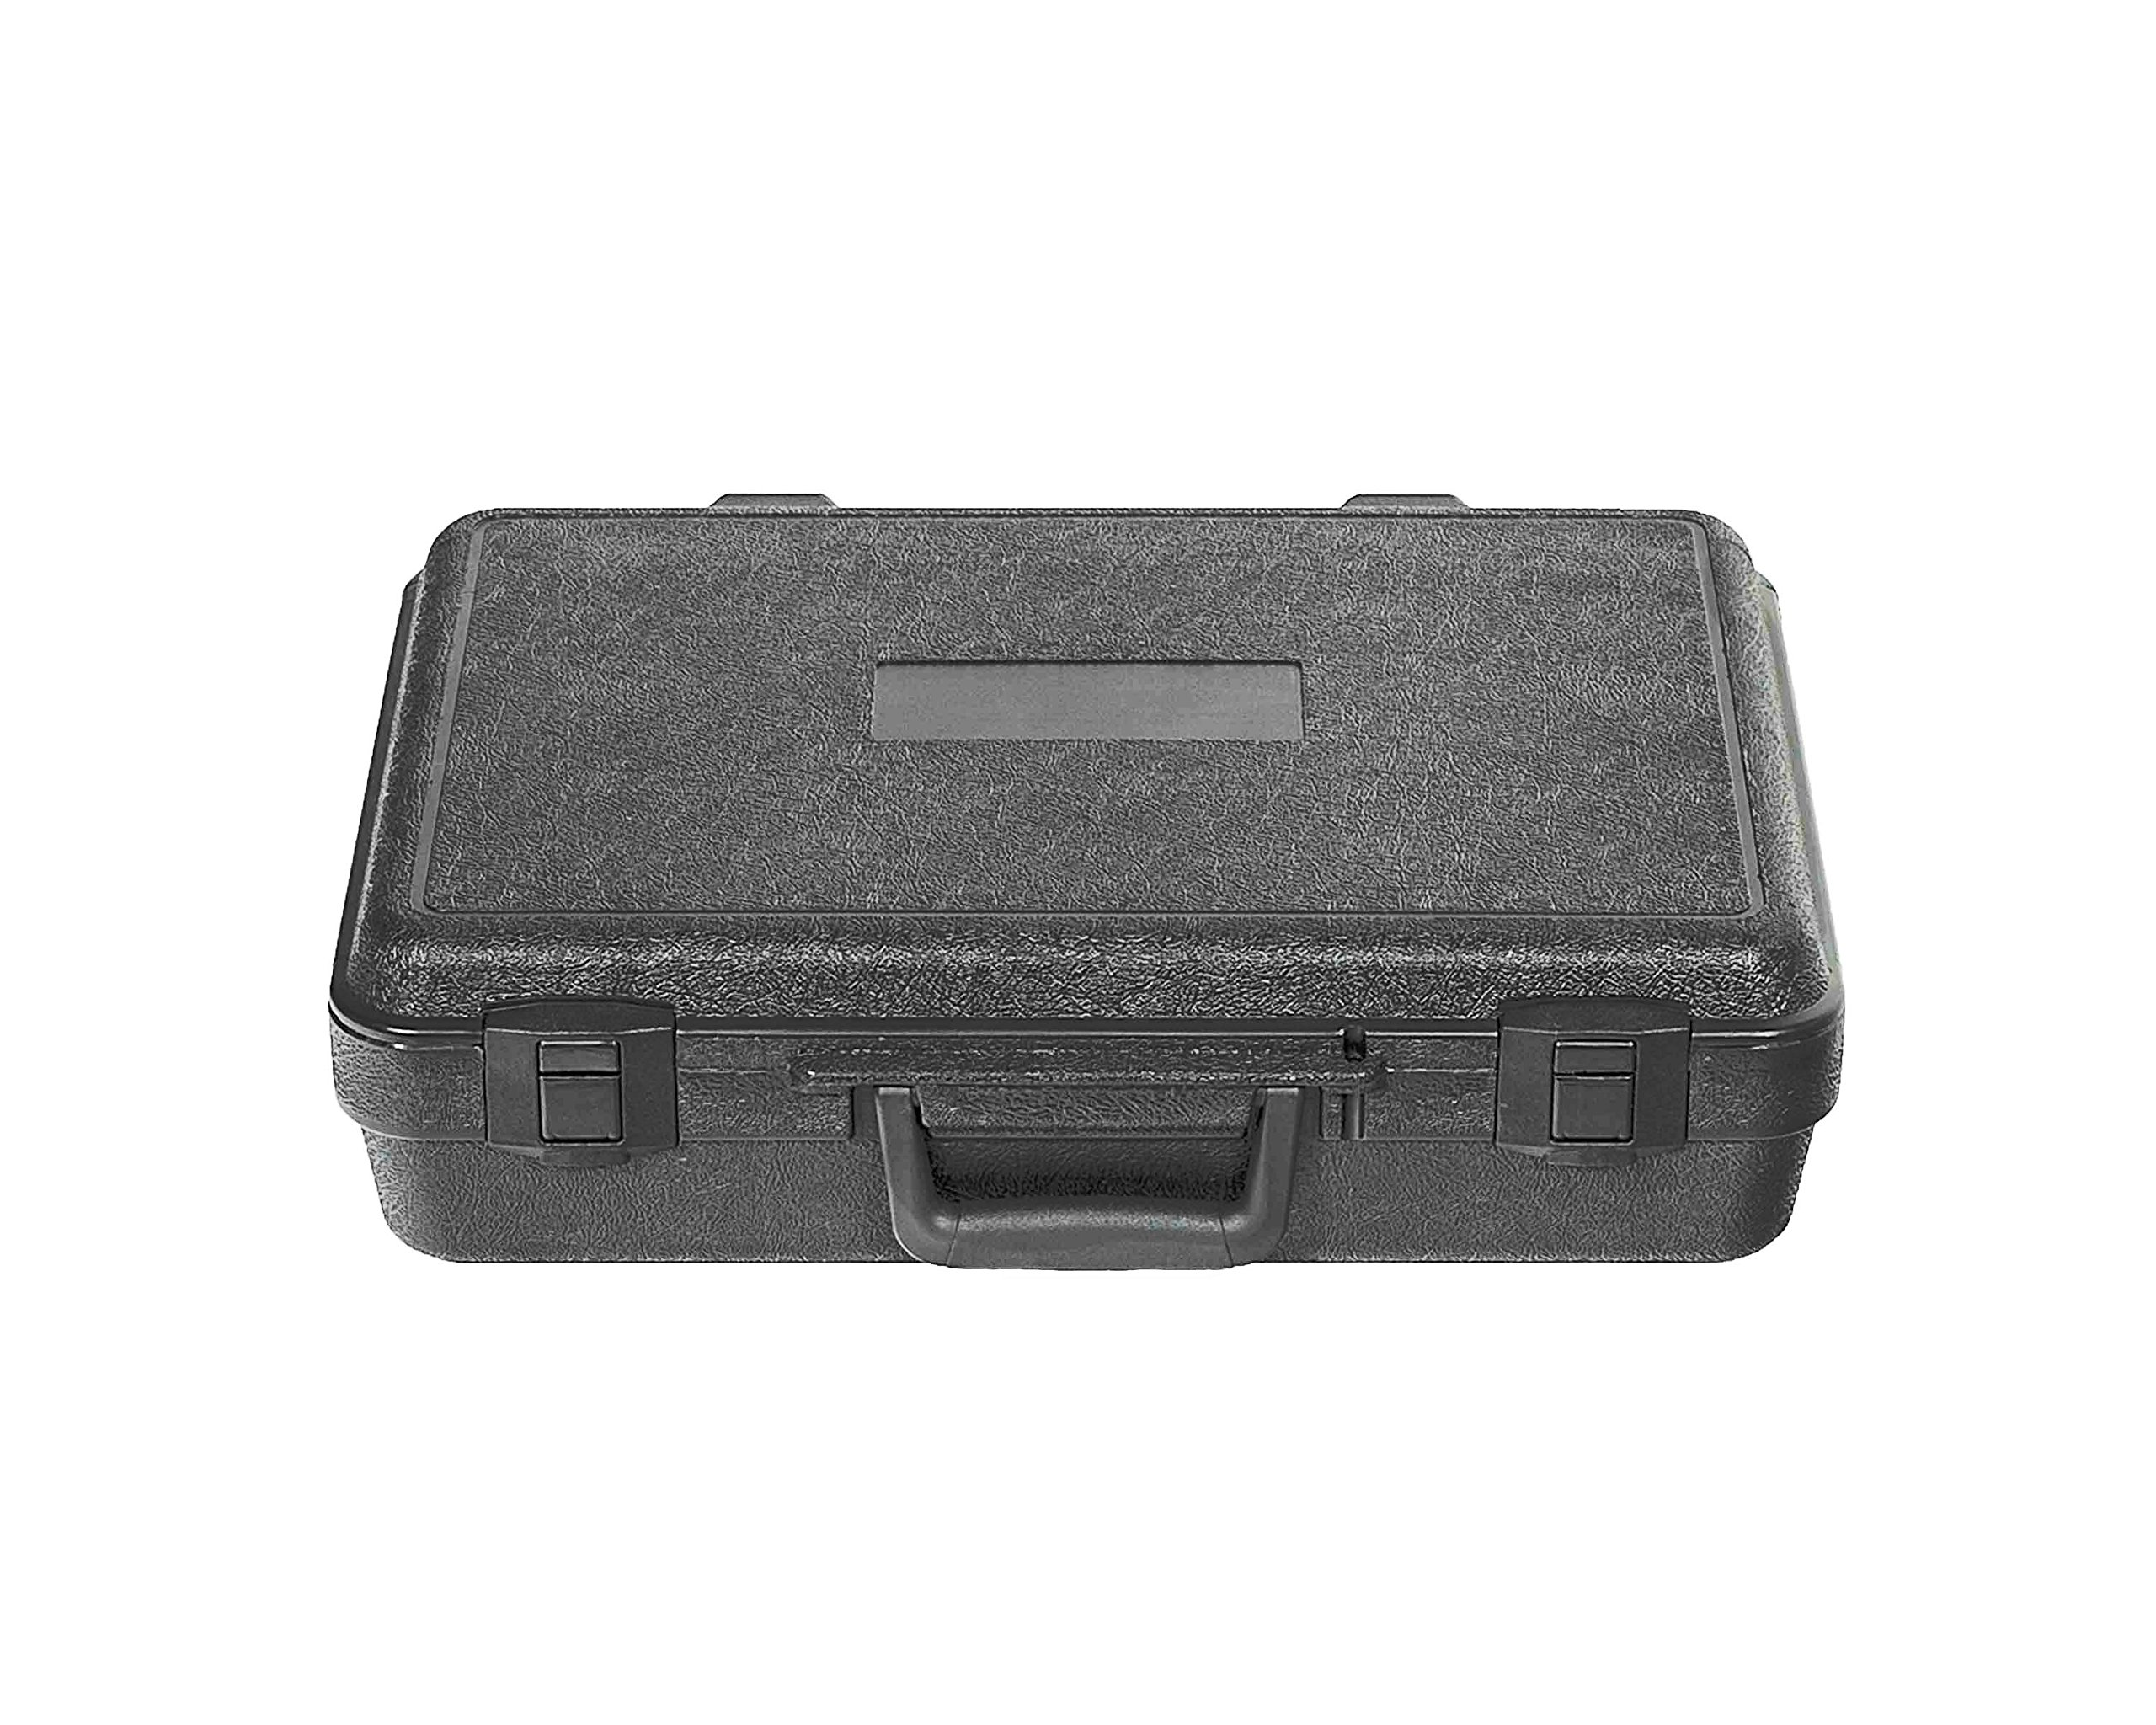 PFC 170-120-055-5PF Plastic Carrying Case with Foam 17'' x 12'' x 5 1/2'', 5Height, 12'' Width, 17'' Length, by PFC